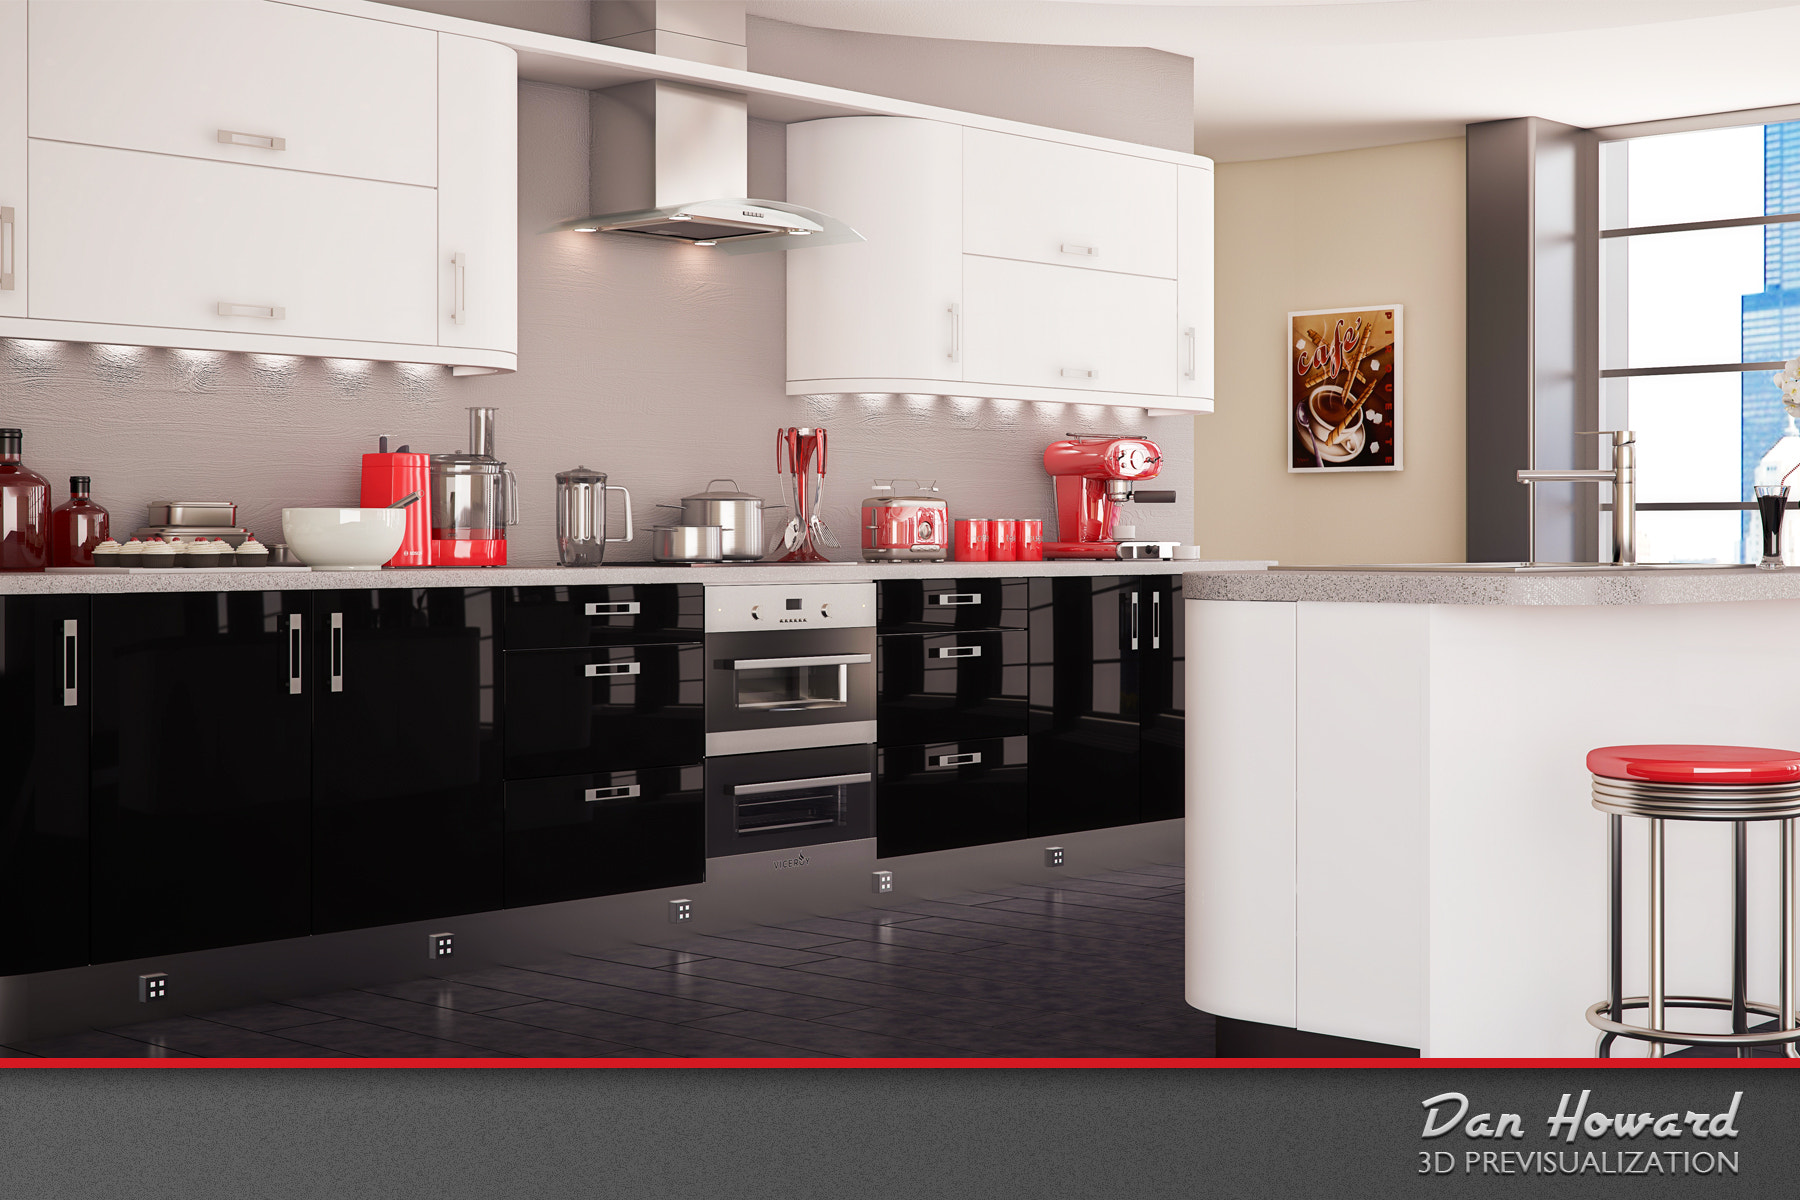 Photograph 3D Kitchen Interior Previsualization by Dan Howard on 500px